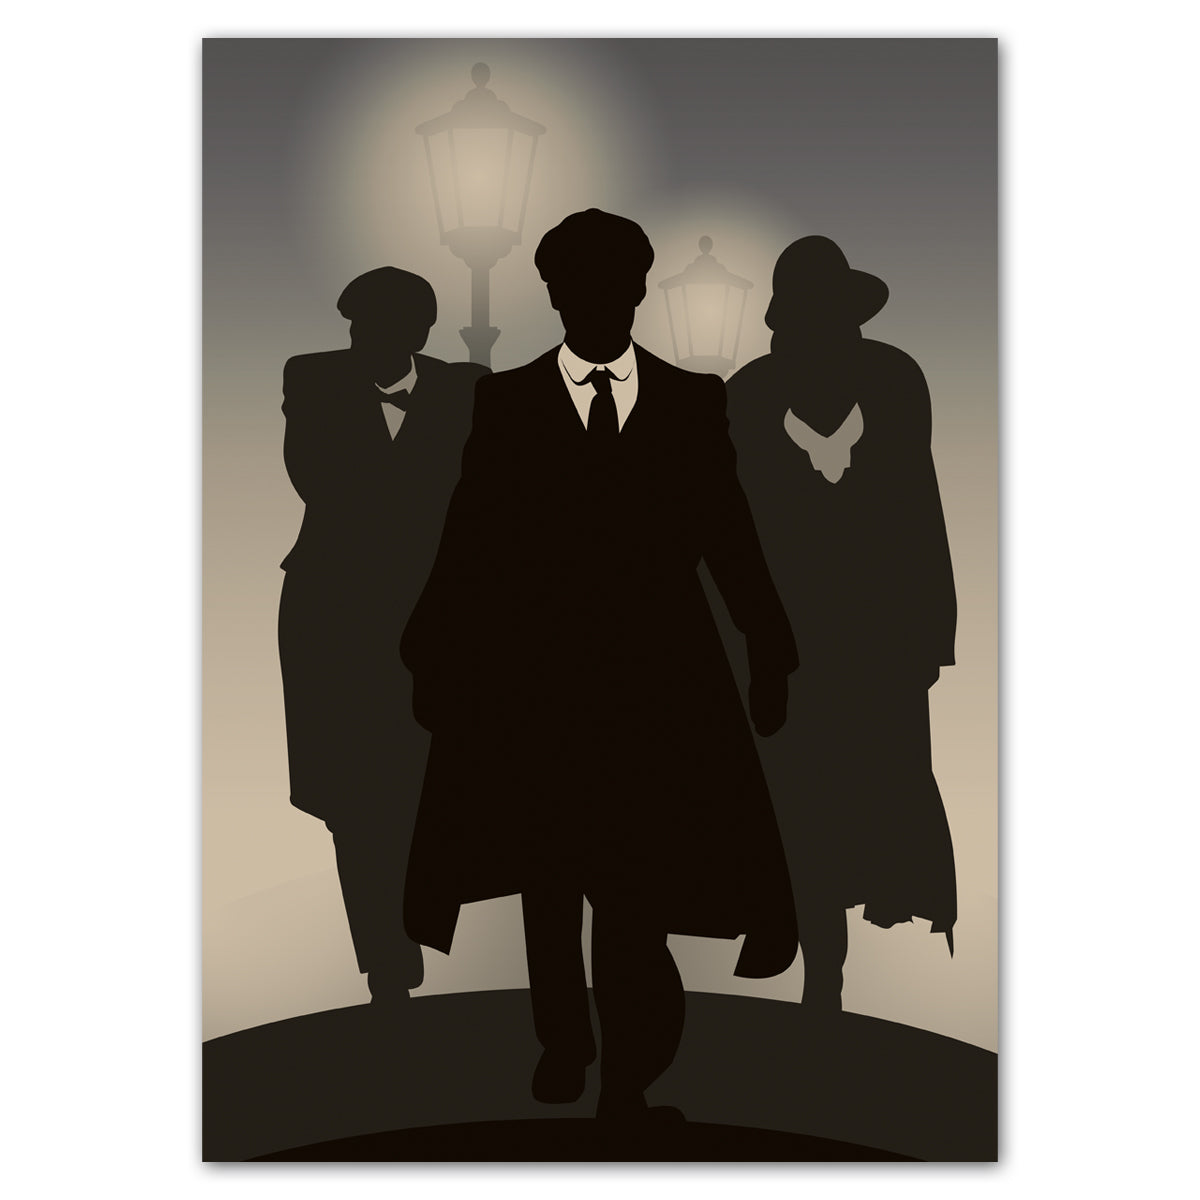 Peaky Blinders Silhouettes Poster Decoration - A3